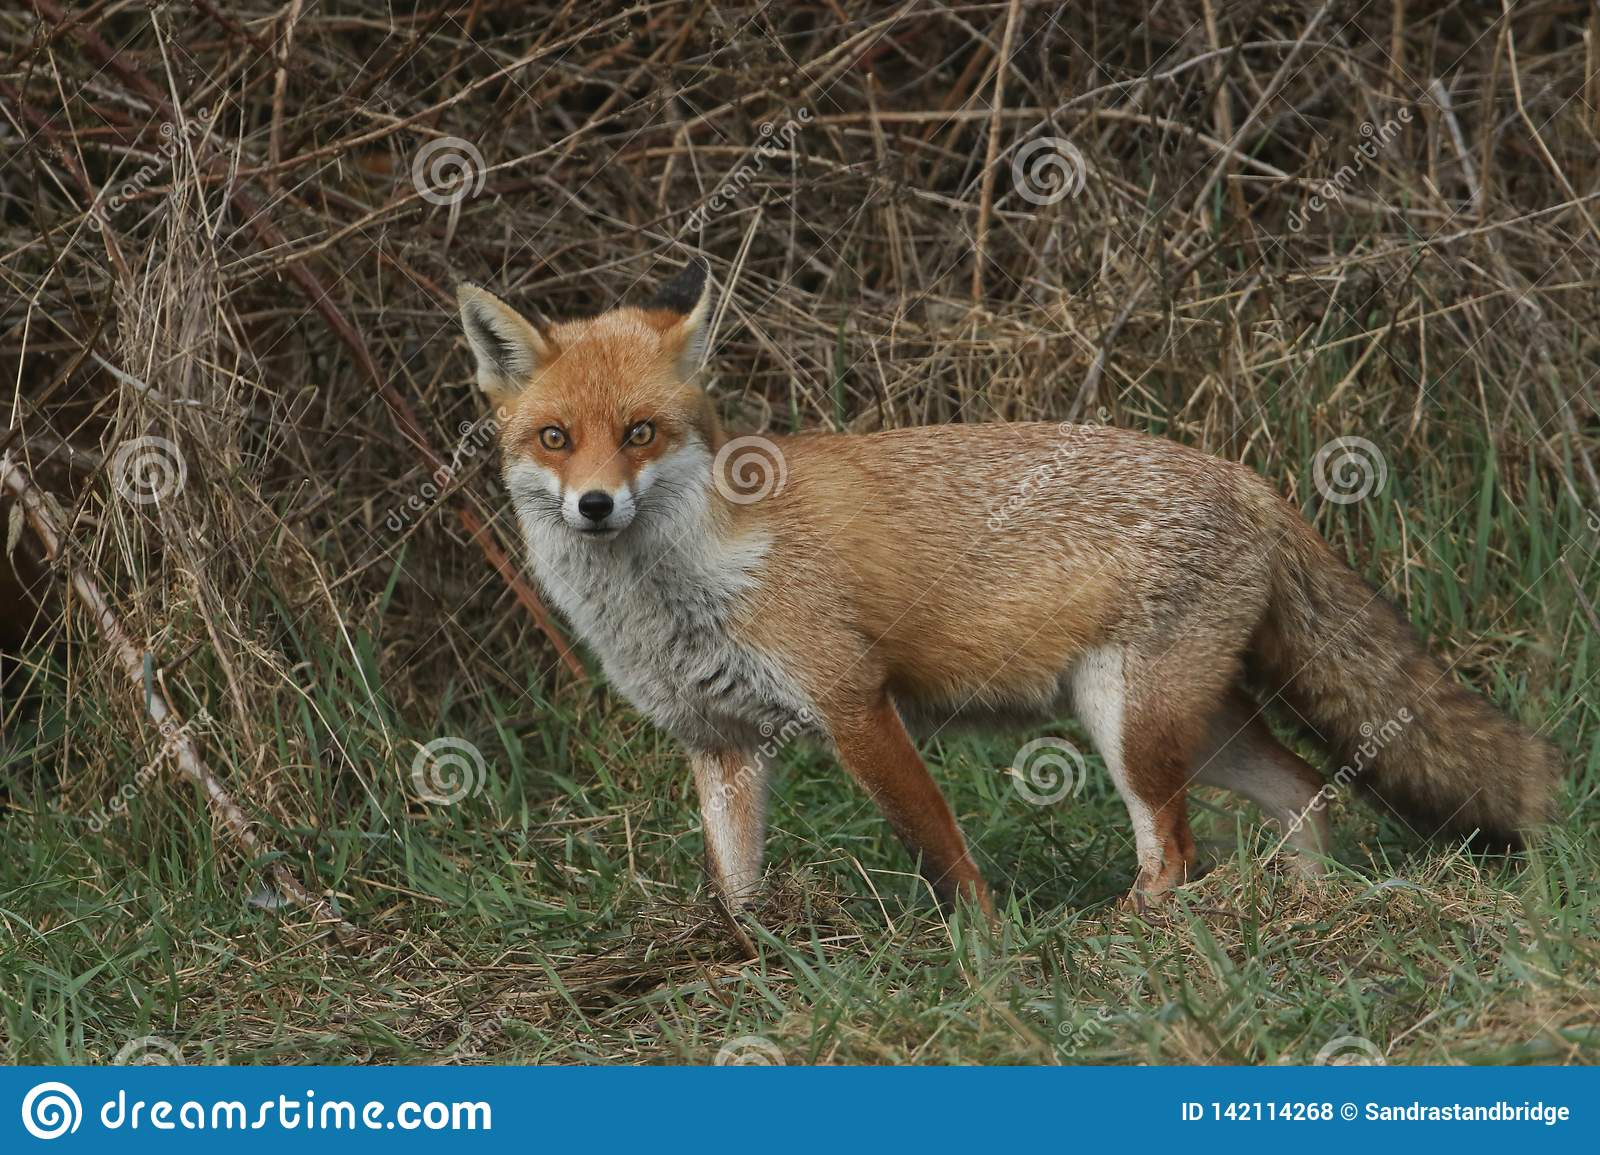 A magnificent wild Red Fox Vulpes vulpes hunting for food at the edge of shrubland.